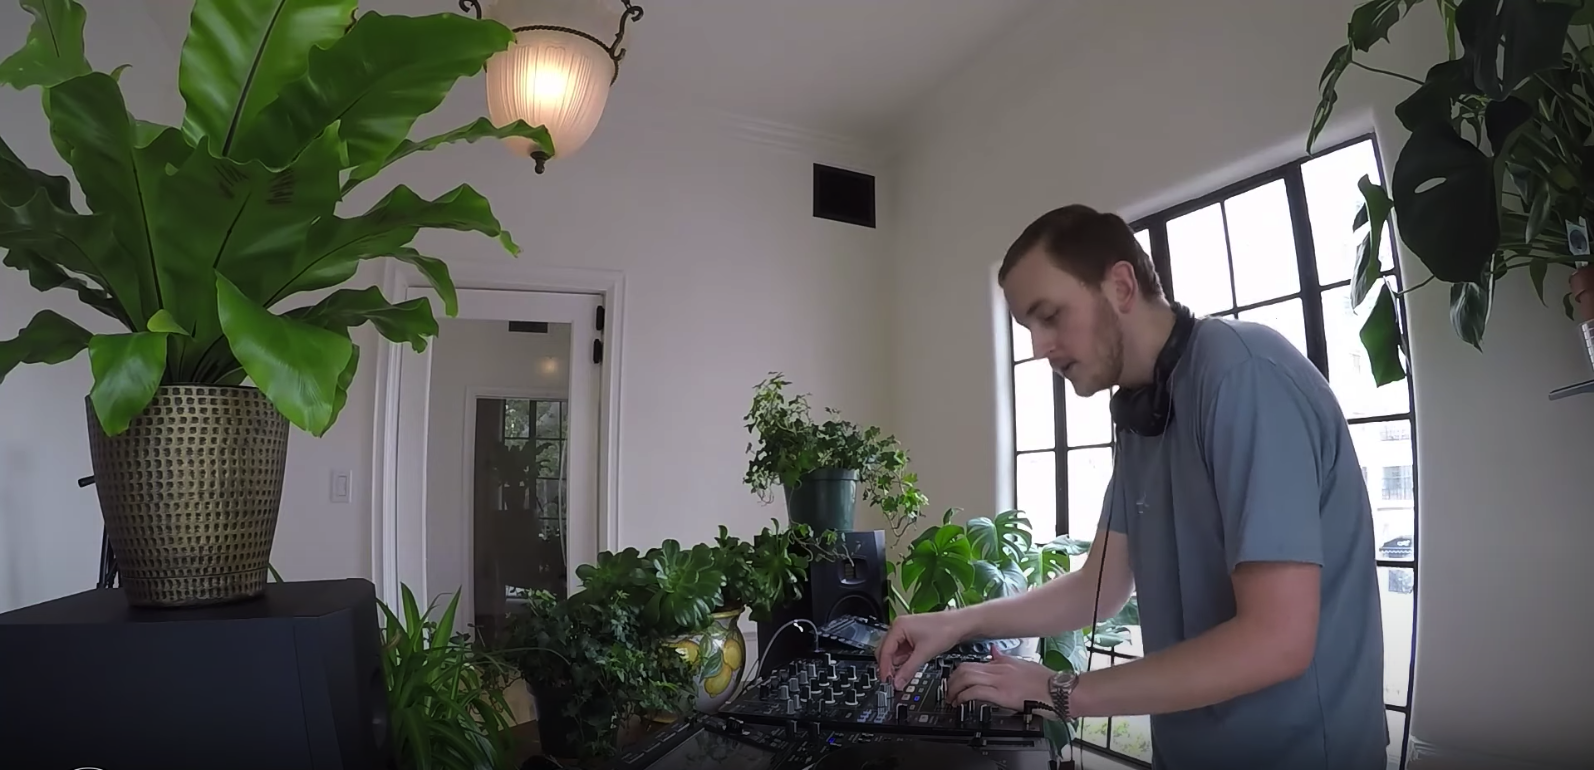 Guy Lawrence from electronic group Disclosure performs live from home on Boiler Room Streaming From Isolation.